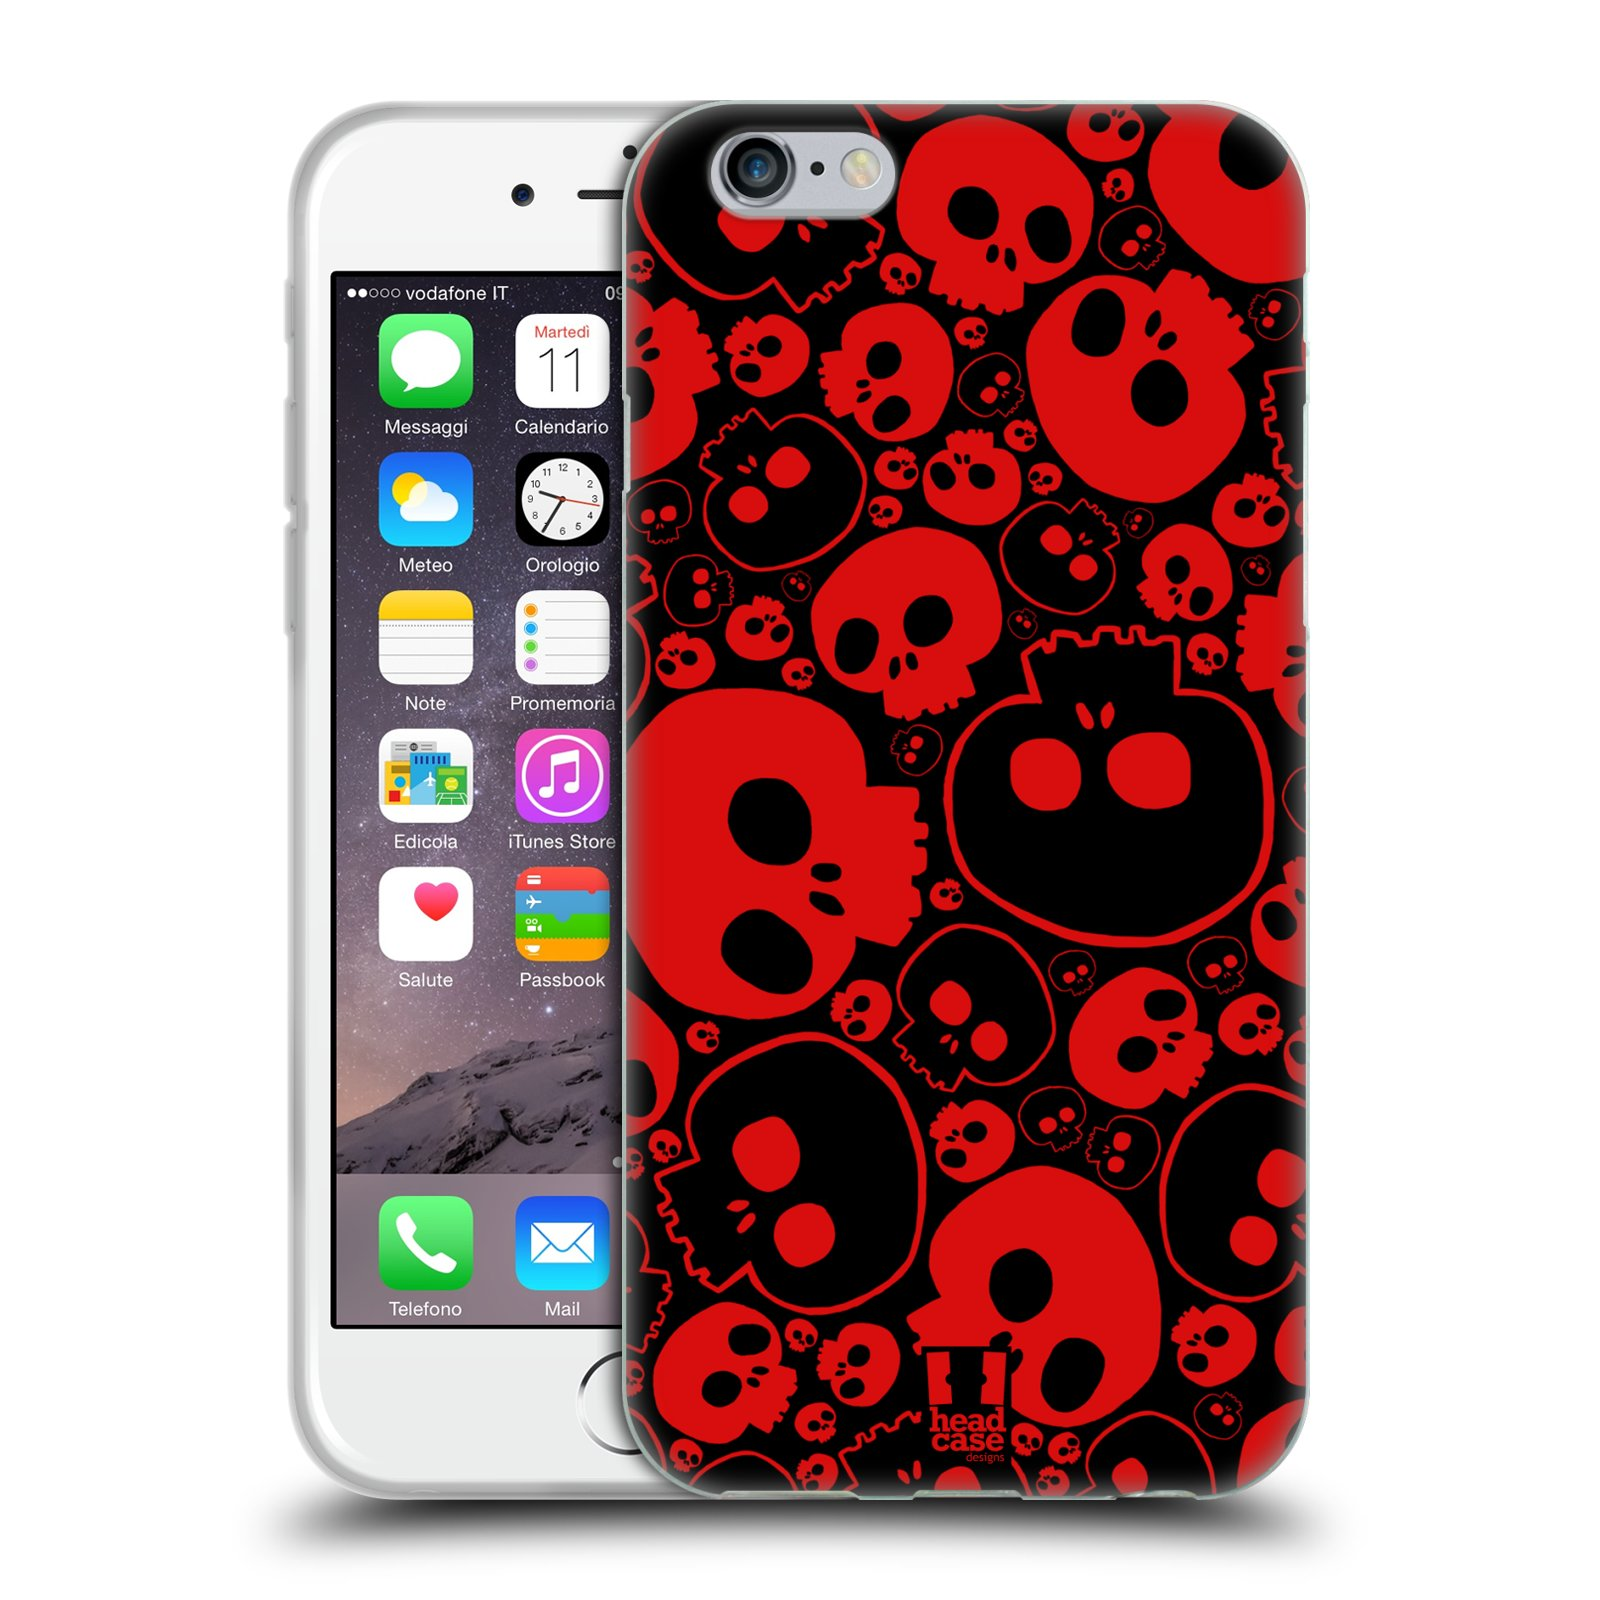 HEAD-CASE-JAZZY-SKULL-GEL-BACK-CASE-COVER-FOR-APPLE-iPHONE-6-4-7